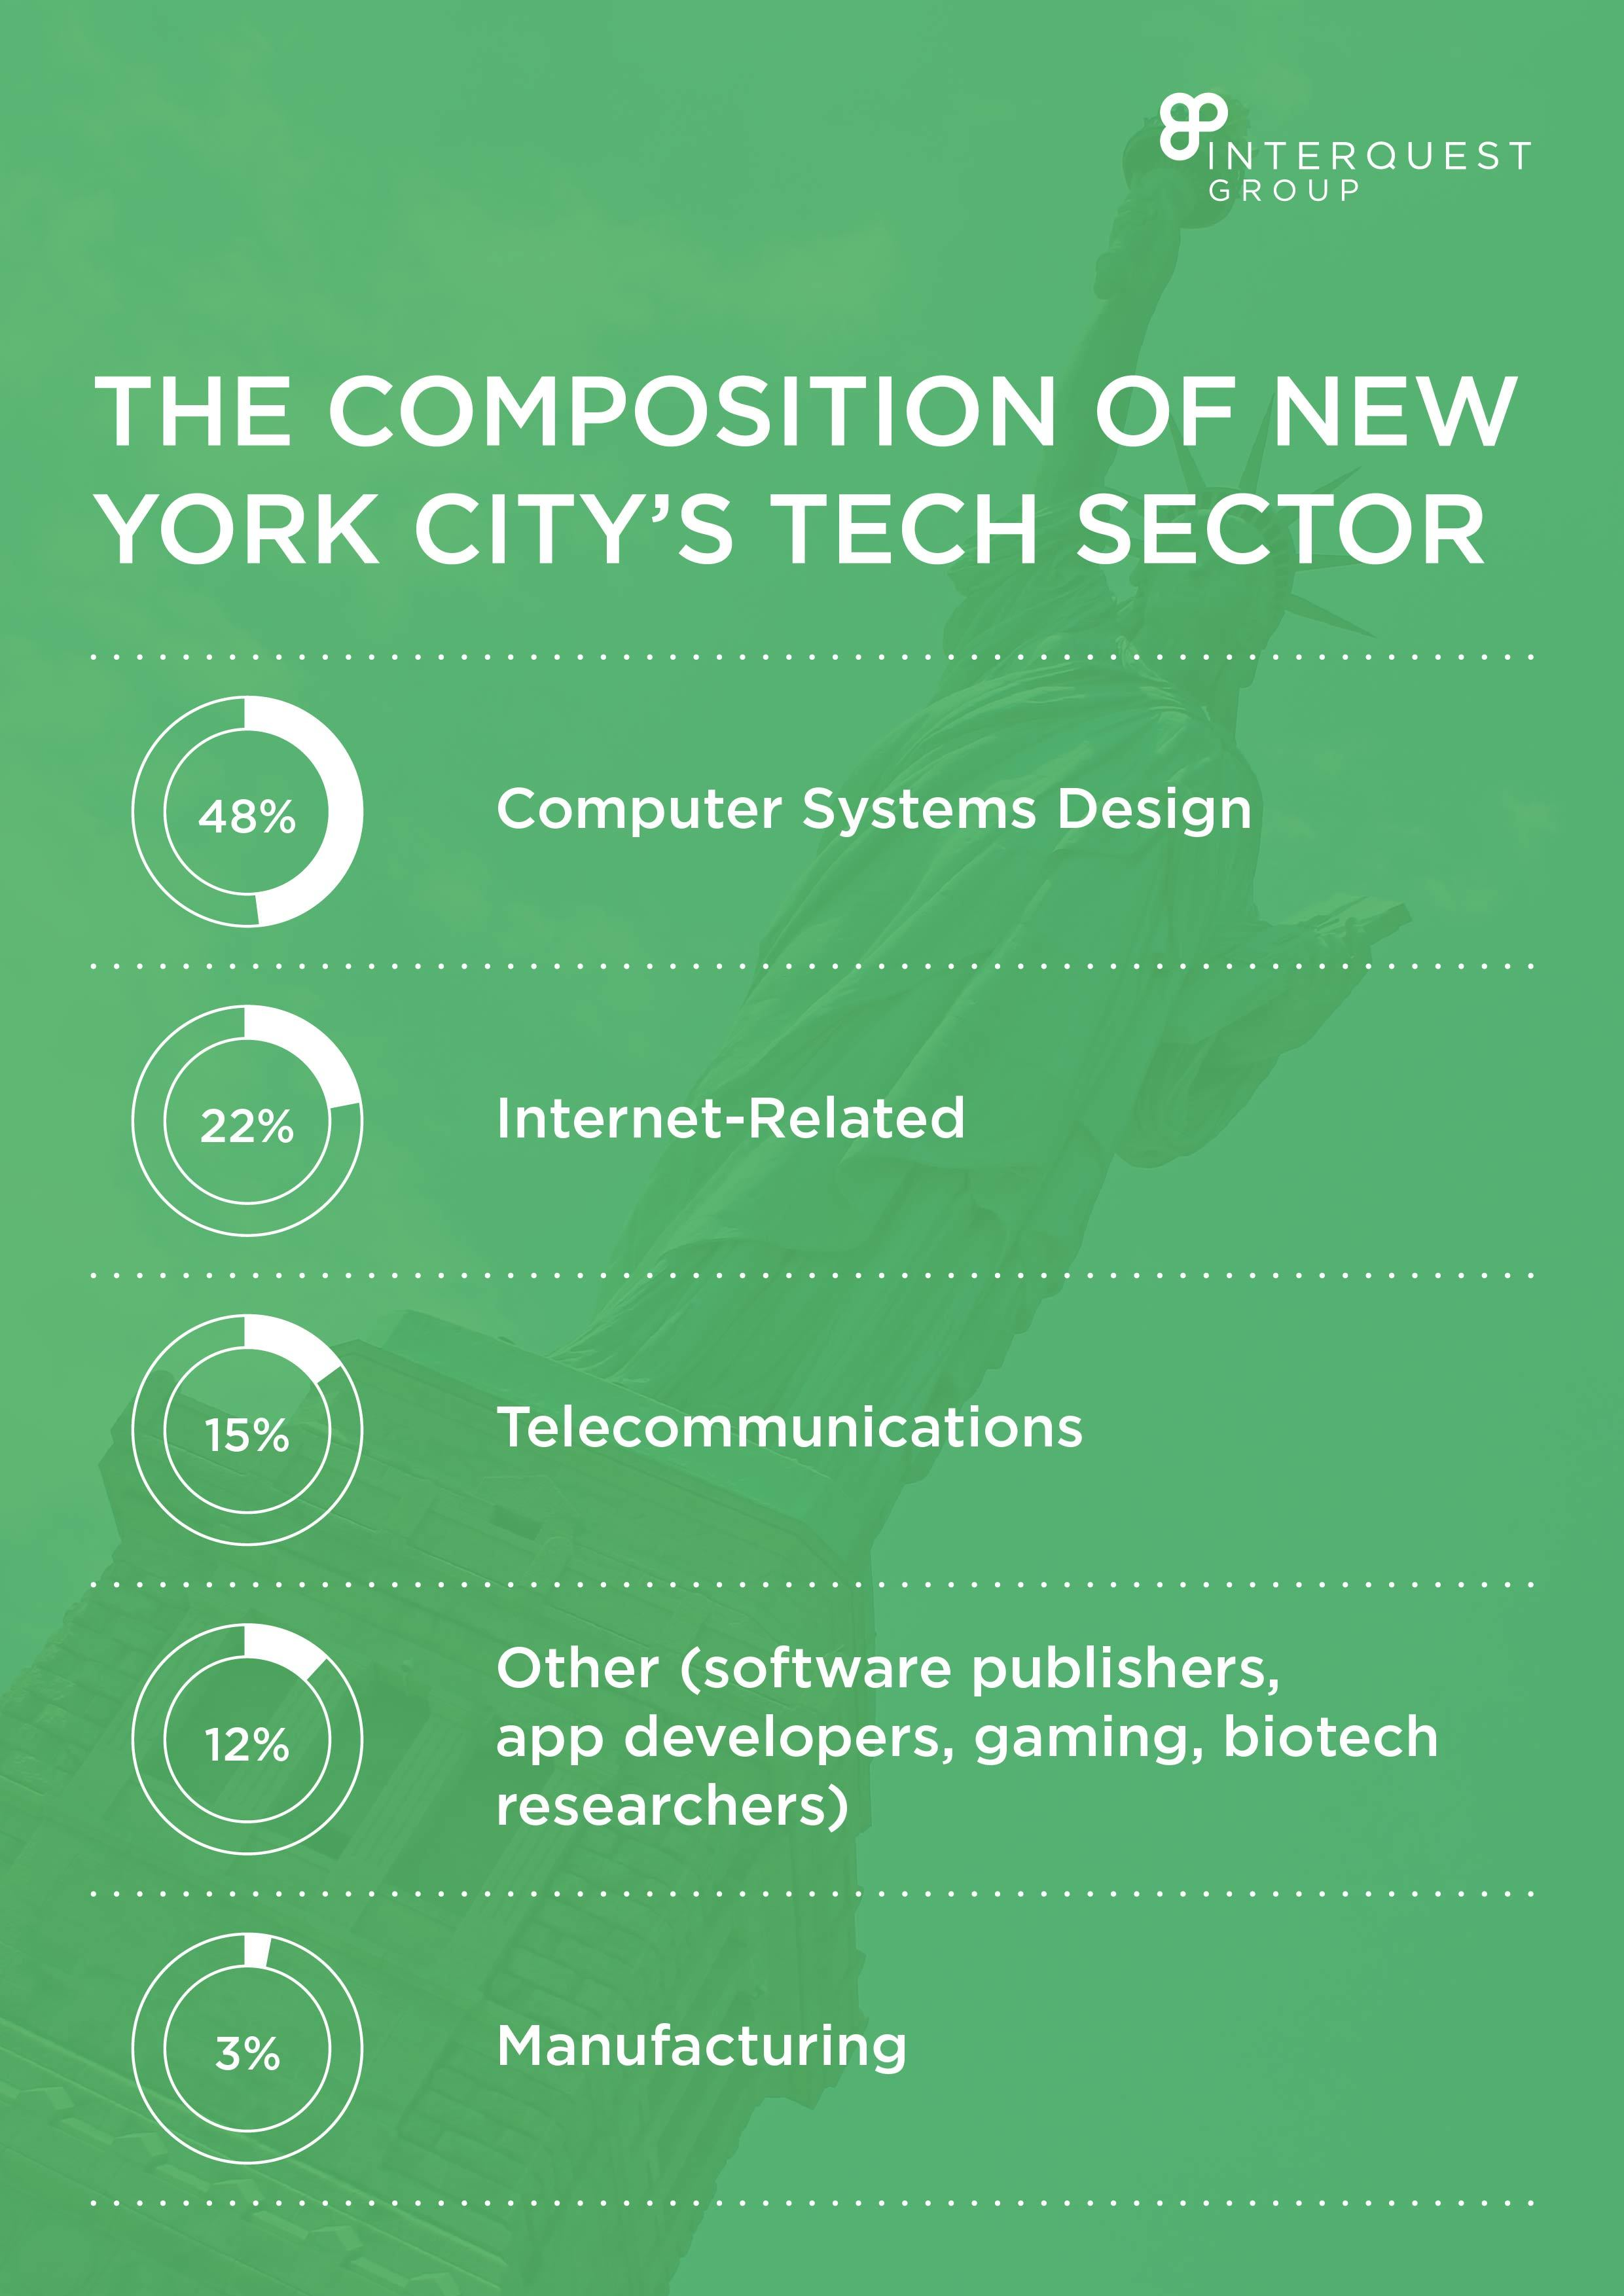 The Composition of New York City's Tech Sector